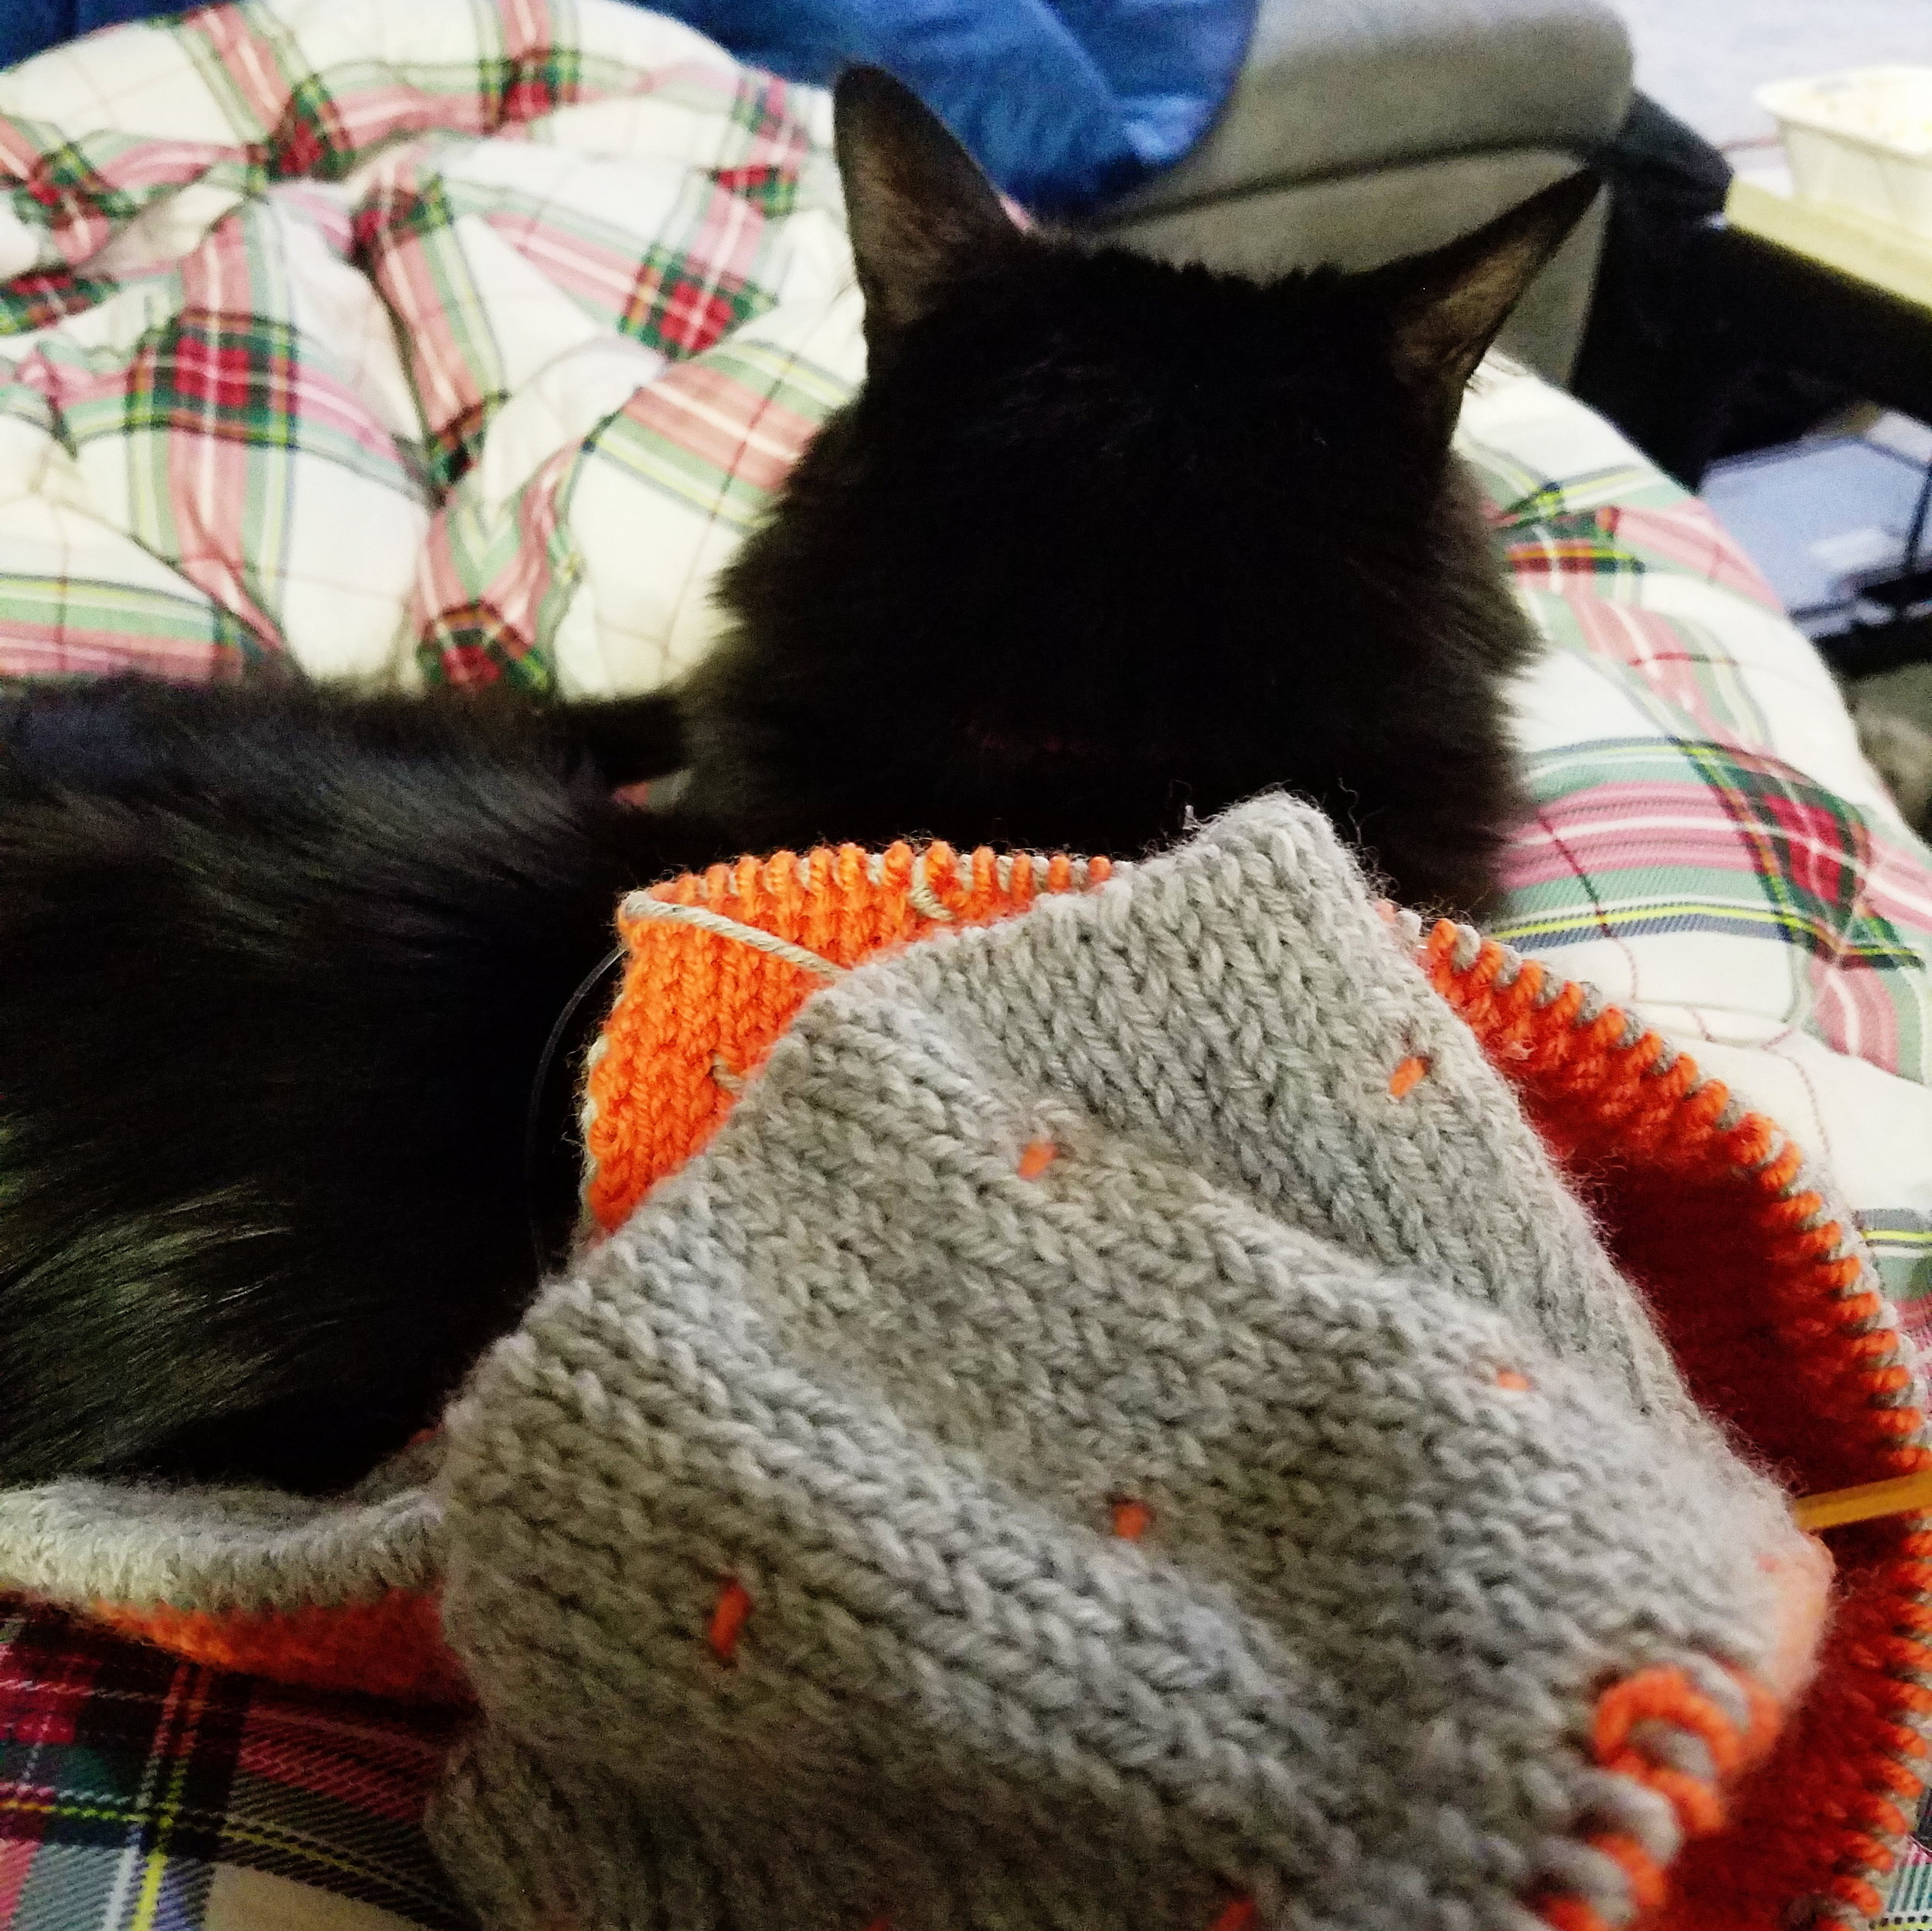 My average weeknight view these days - knitting and a cat on my lap!